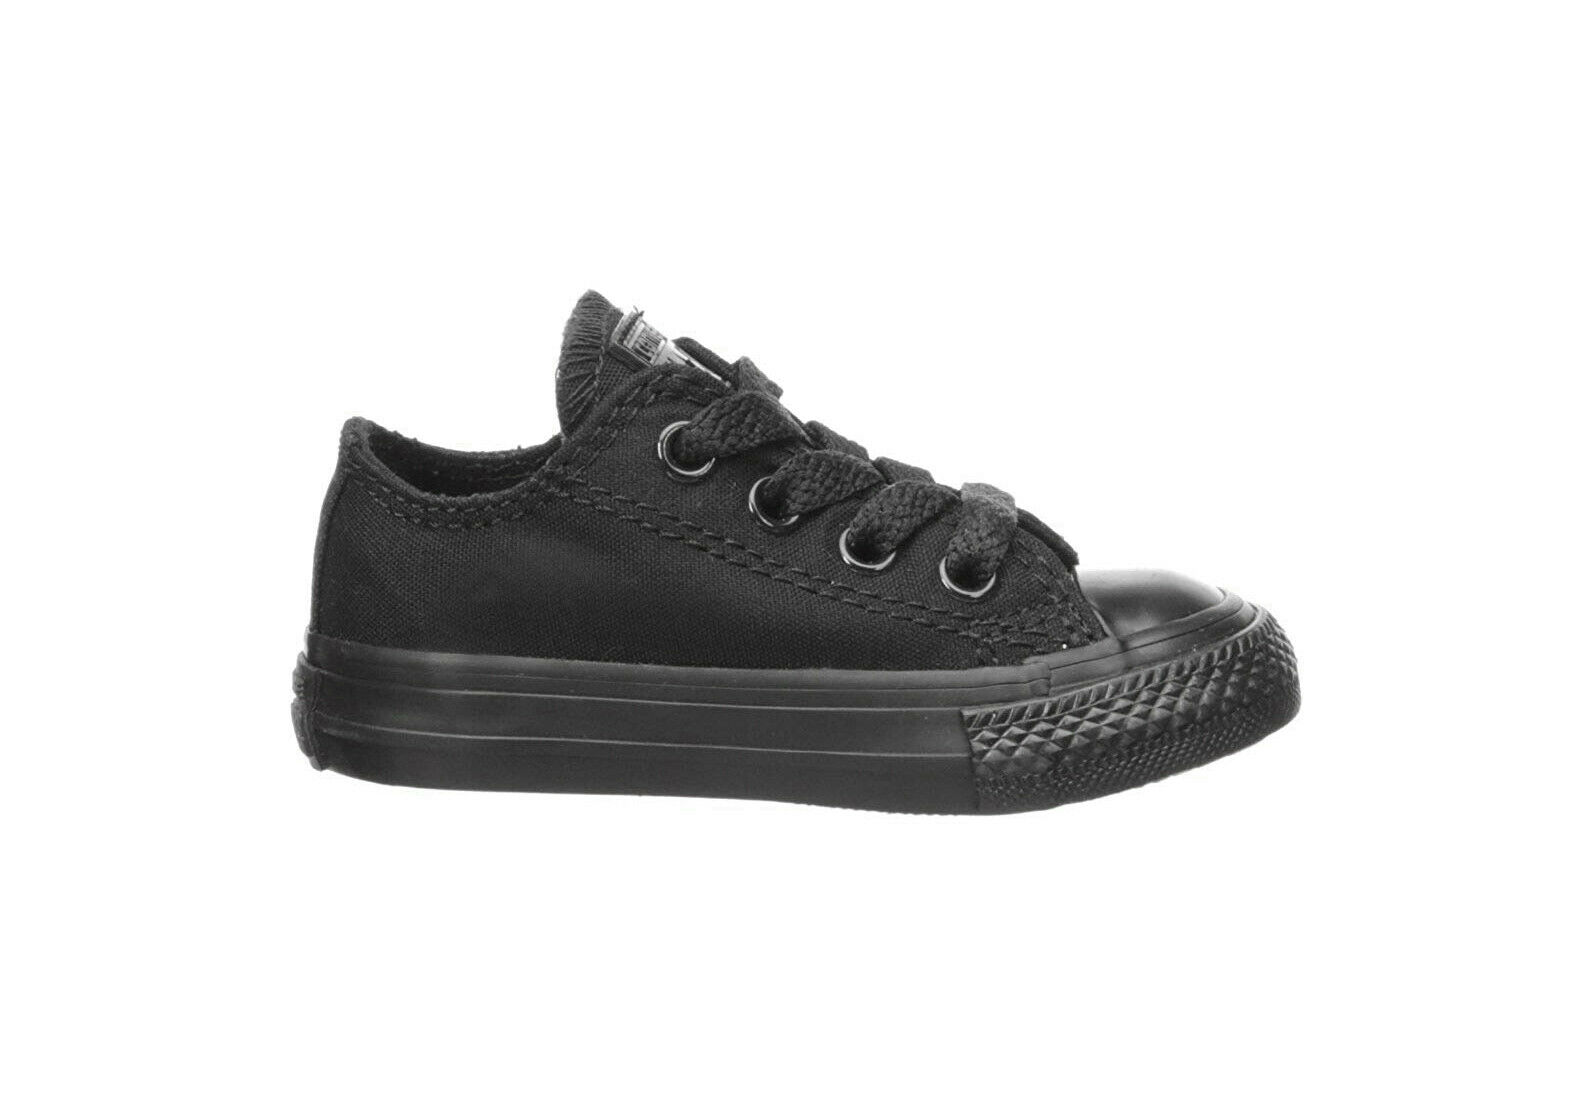 Converse Infant All Star Low Top Shoes All Black Chucks Toddler Girls 714786 1